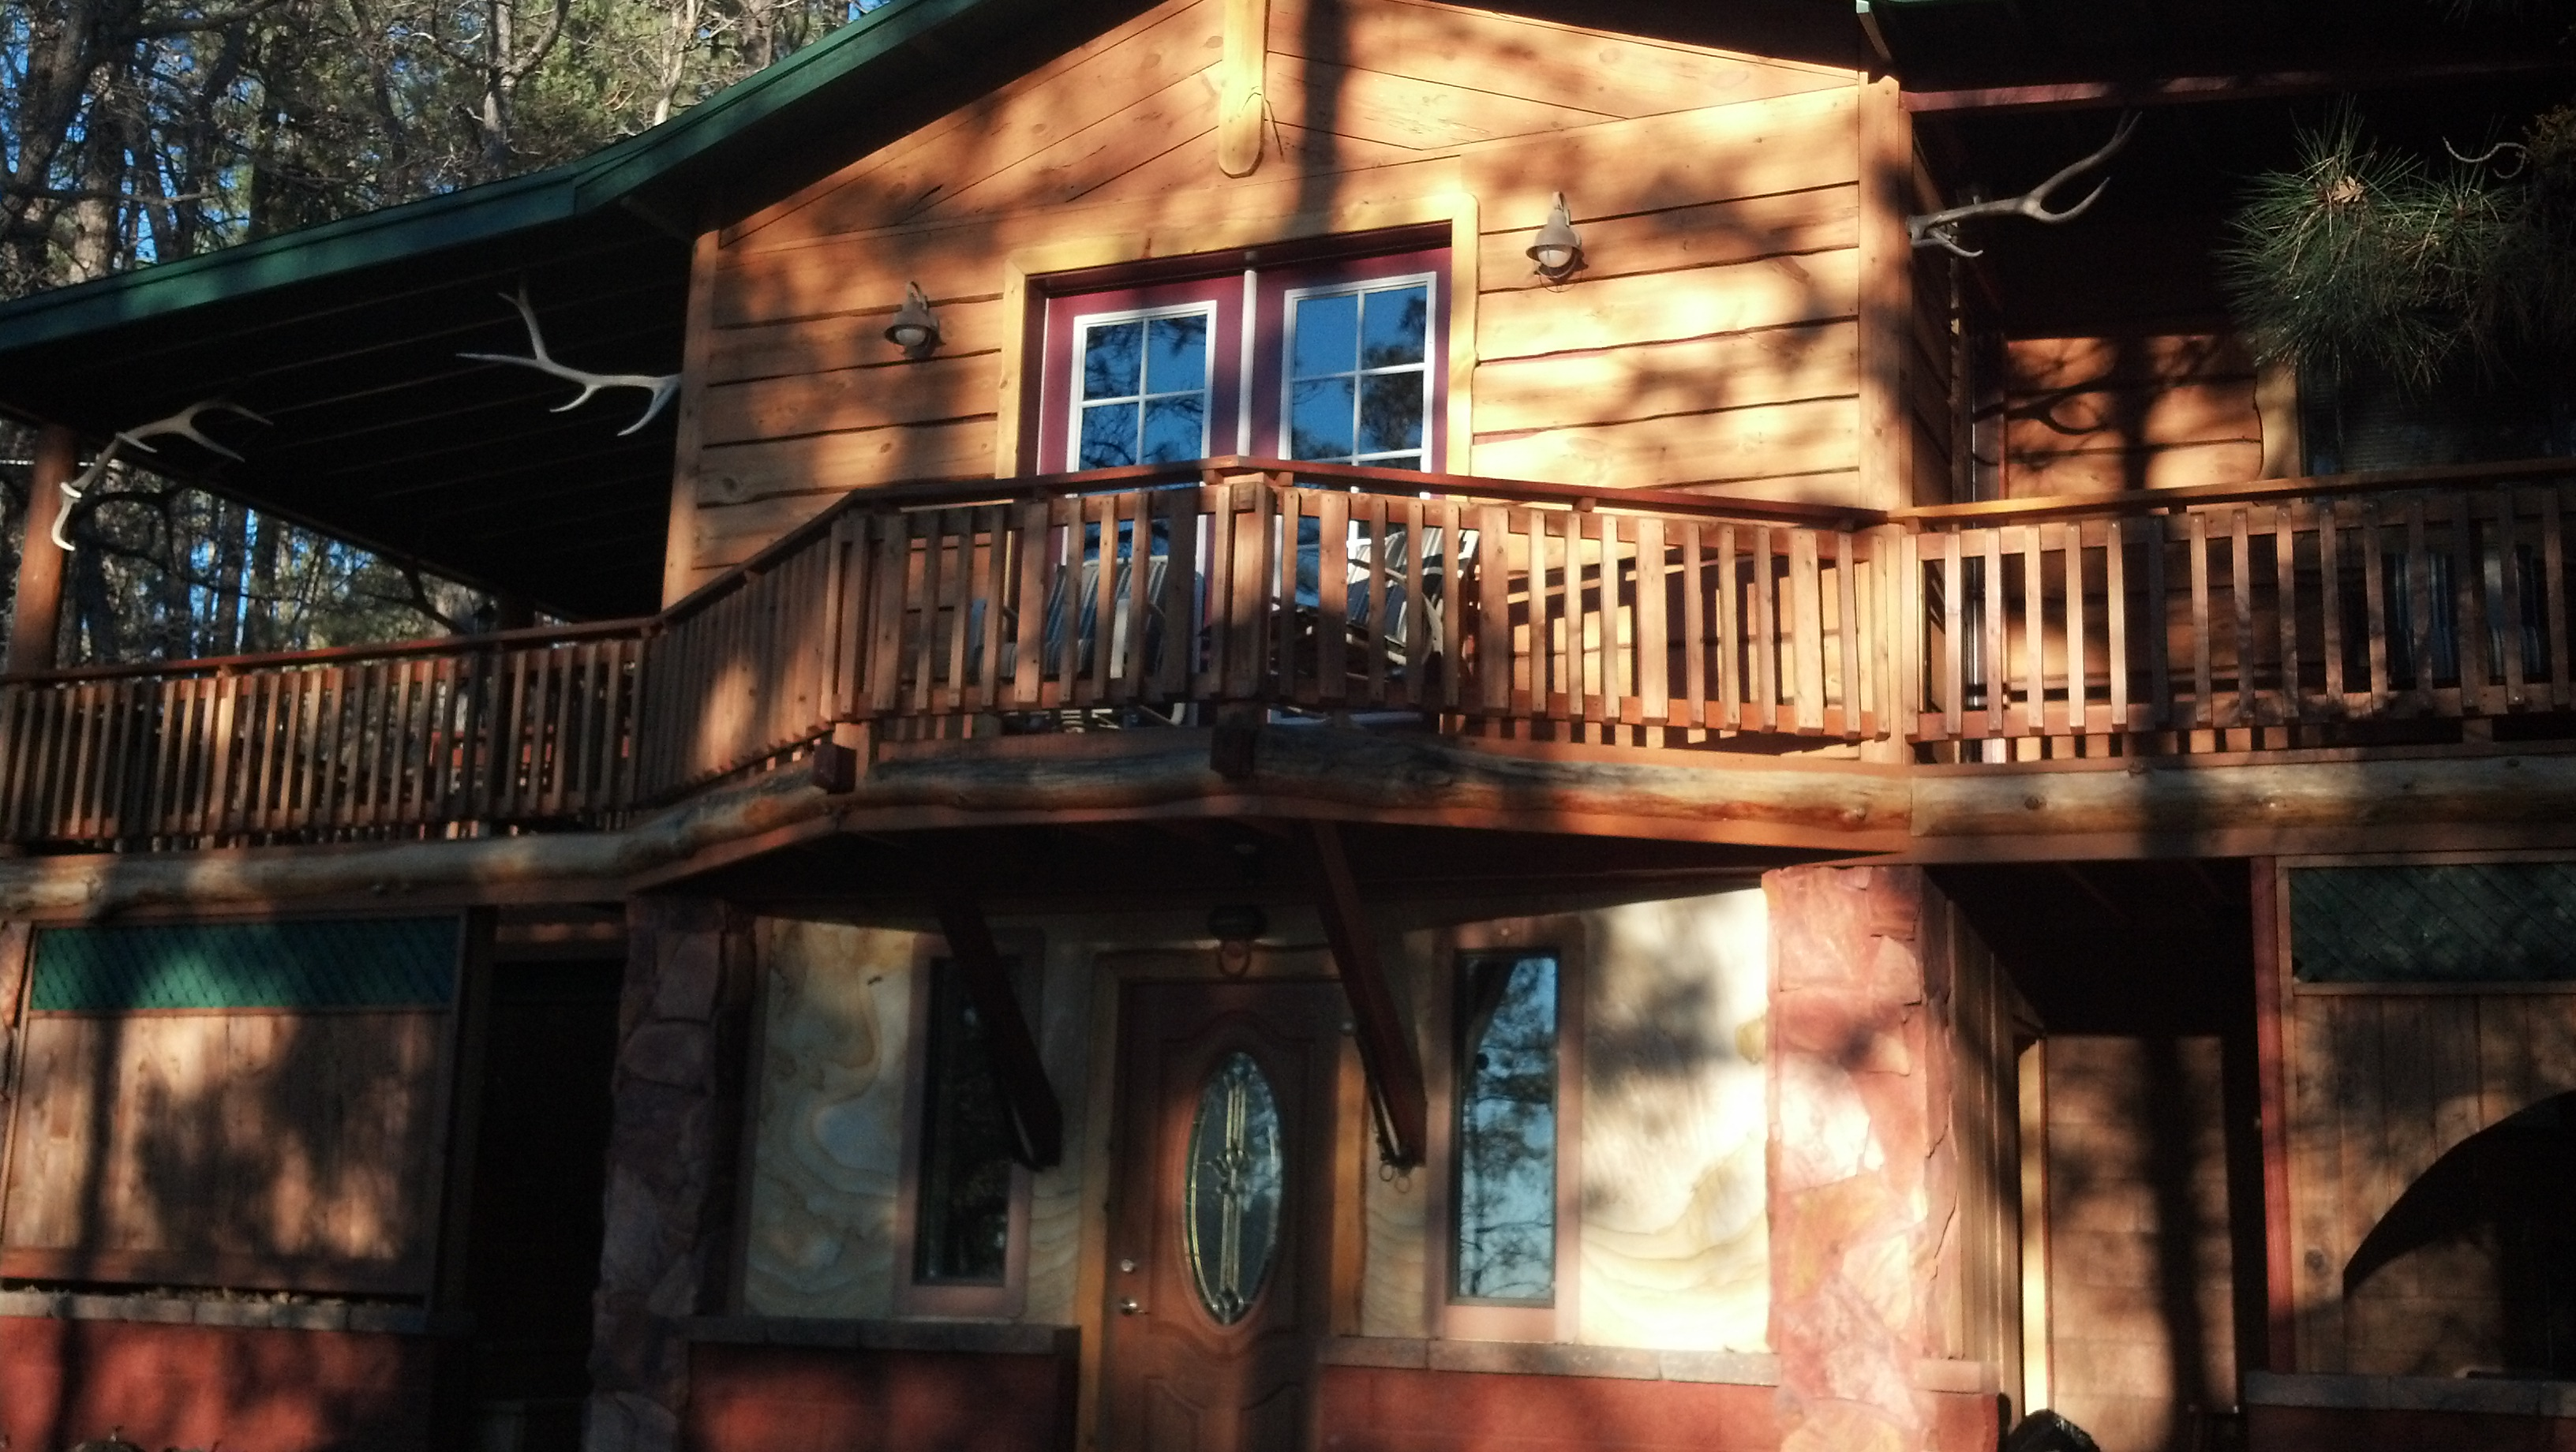 pinetop arizona nestled cabins rooms lakeside the houses rent united pines cedar states home in for